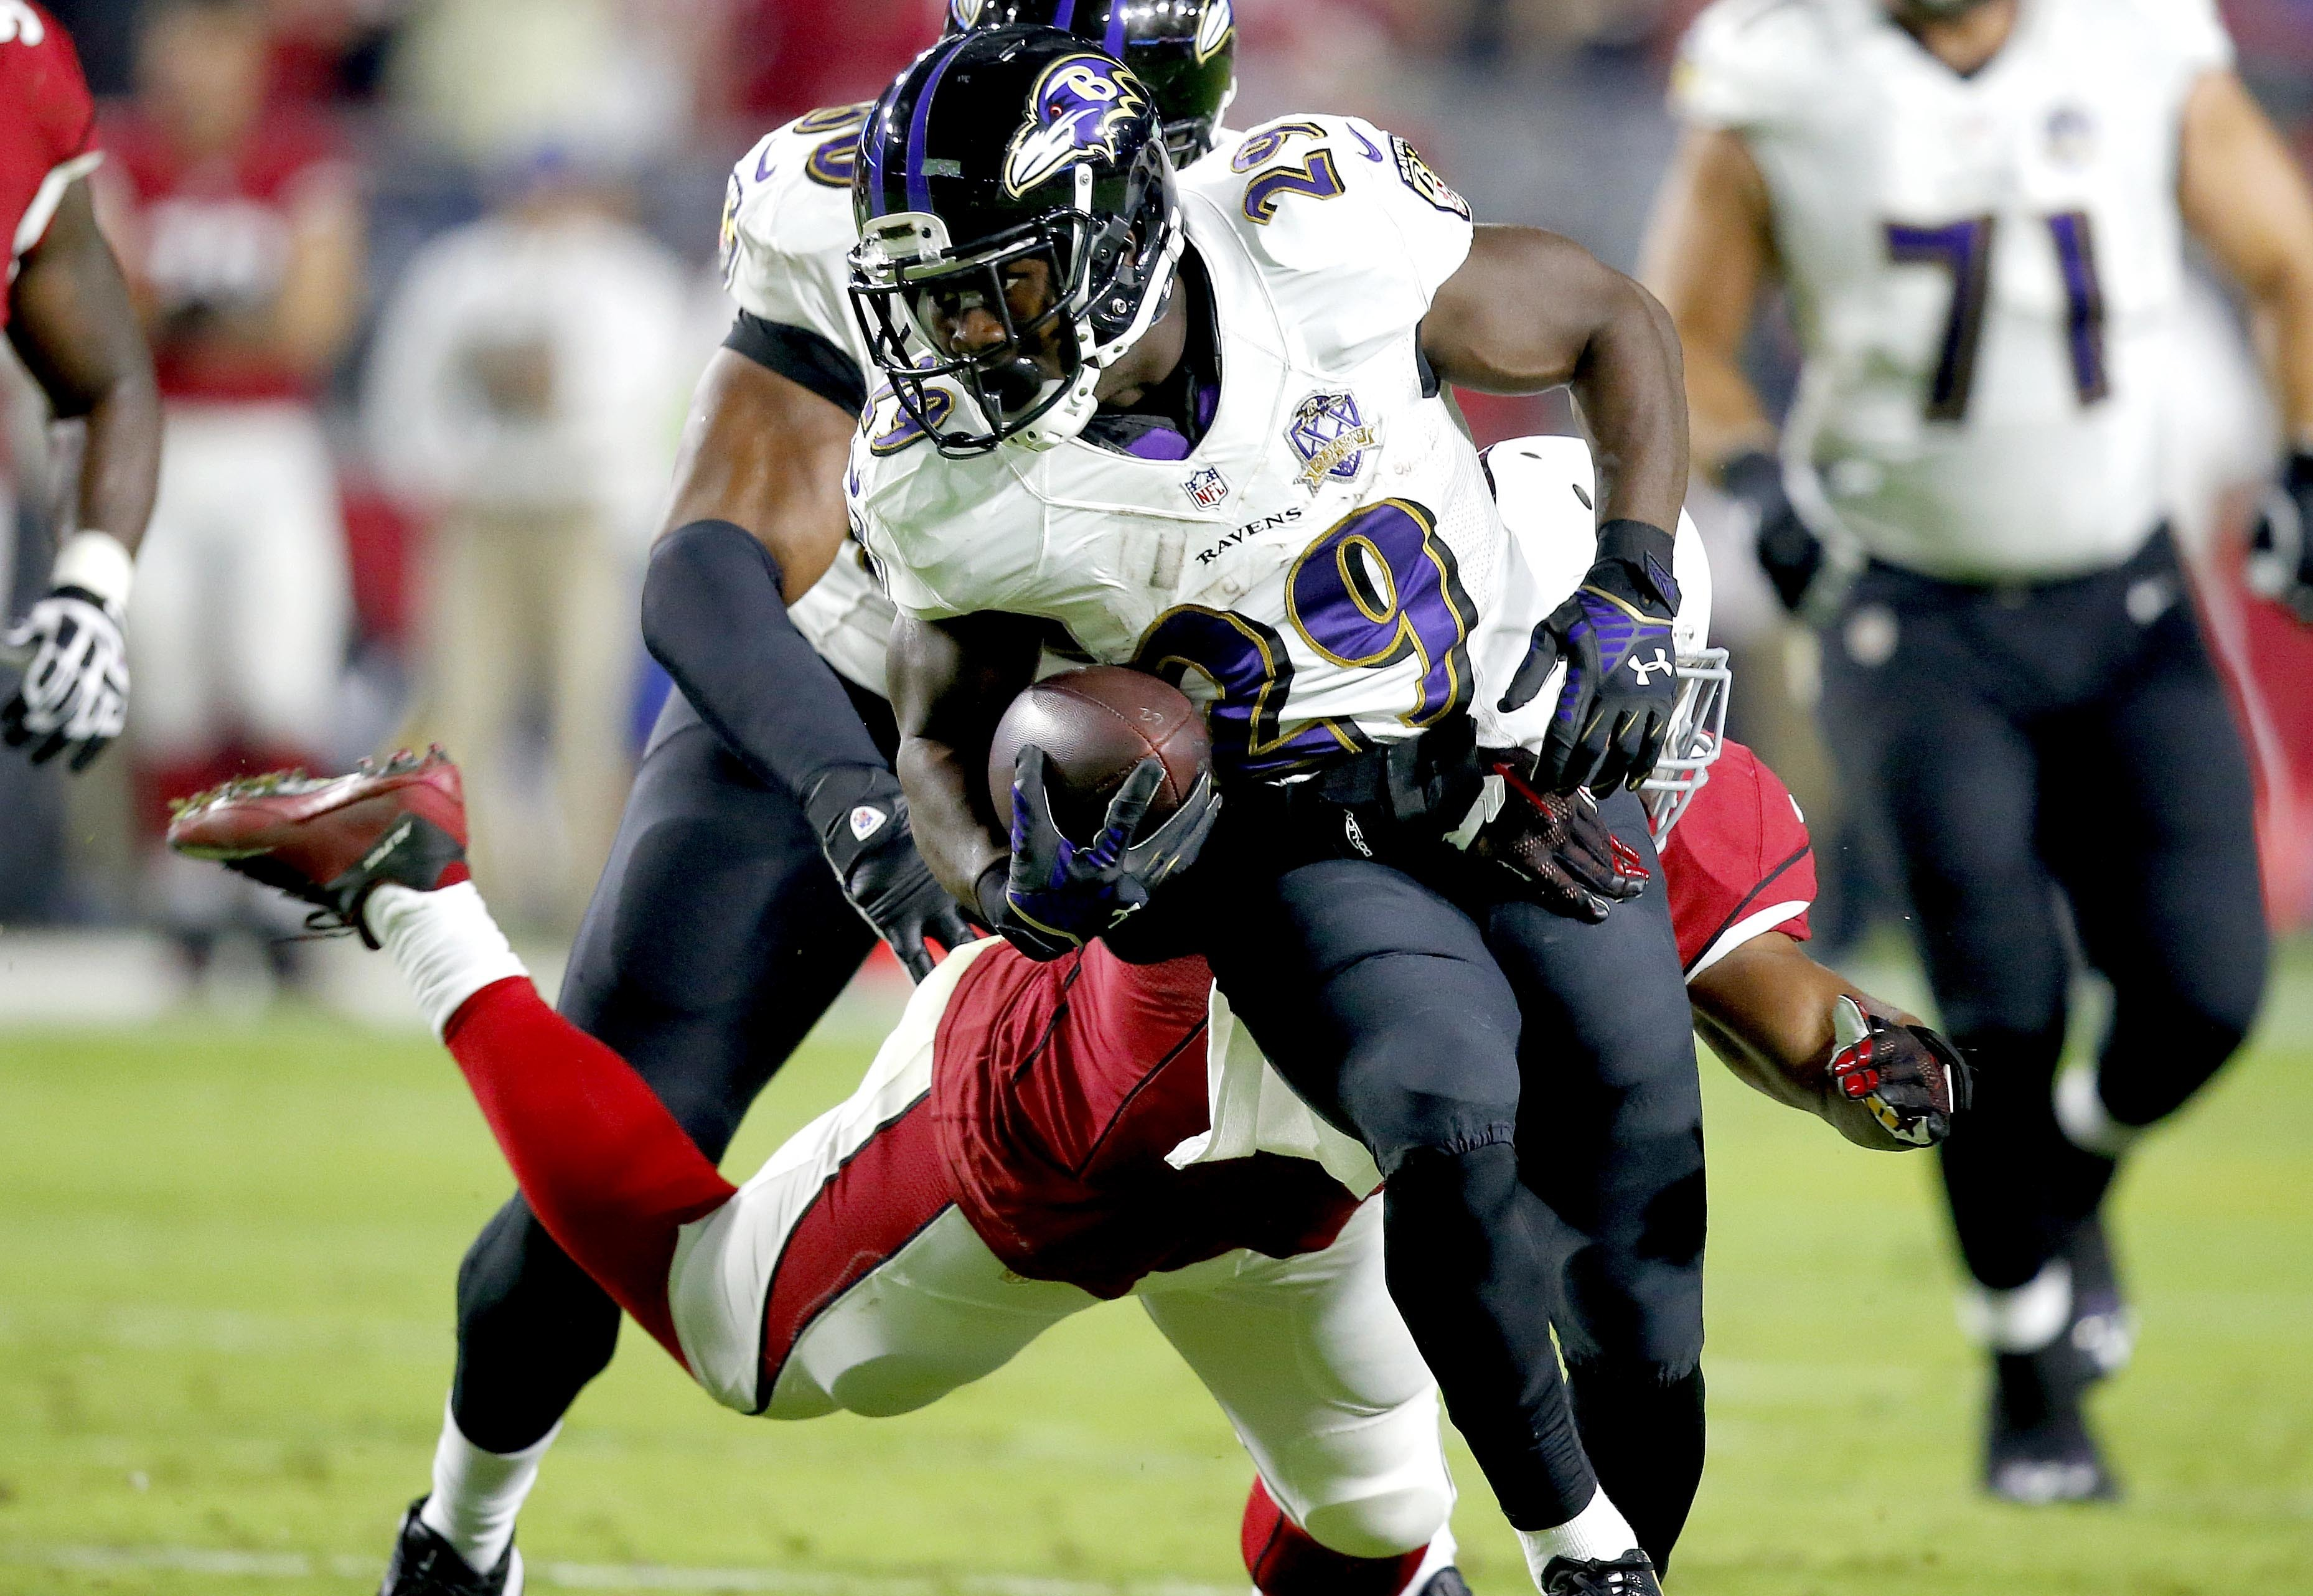 FILE - In this Oct. 26, 2015, file photo, then-Baltimore Ravens running back Justin Forsett (29) runs against the Arizona Cardinals during the first half of an NFL football game,in Glendale, Ariz. The Detroit Lions signed running back Justin Forsett earli